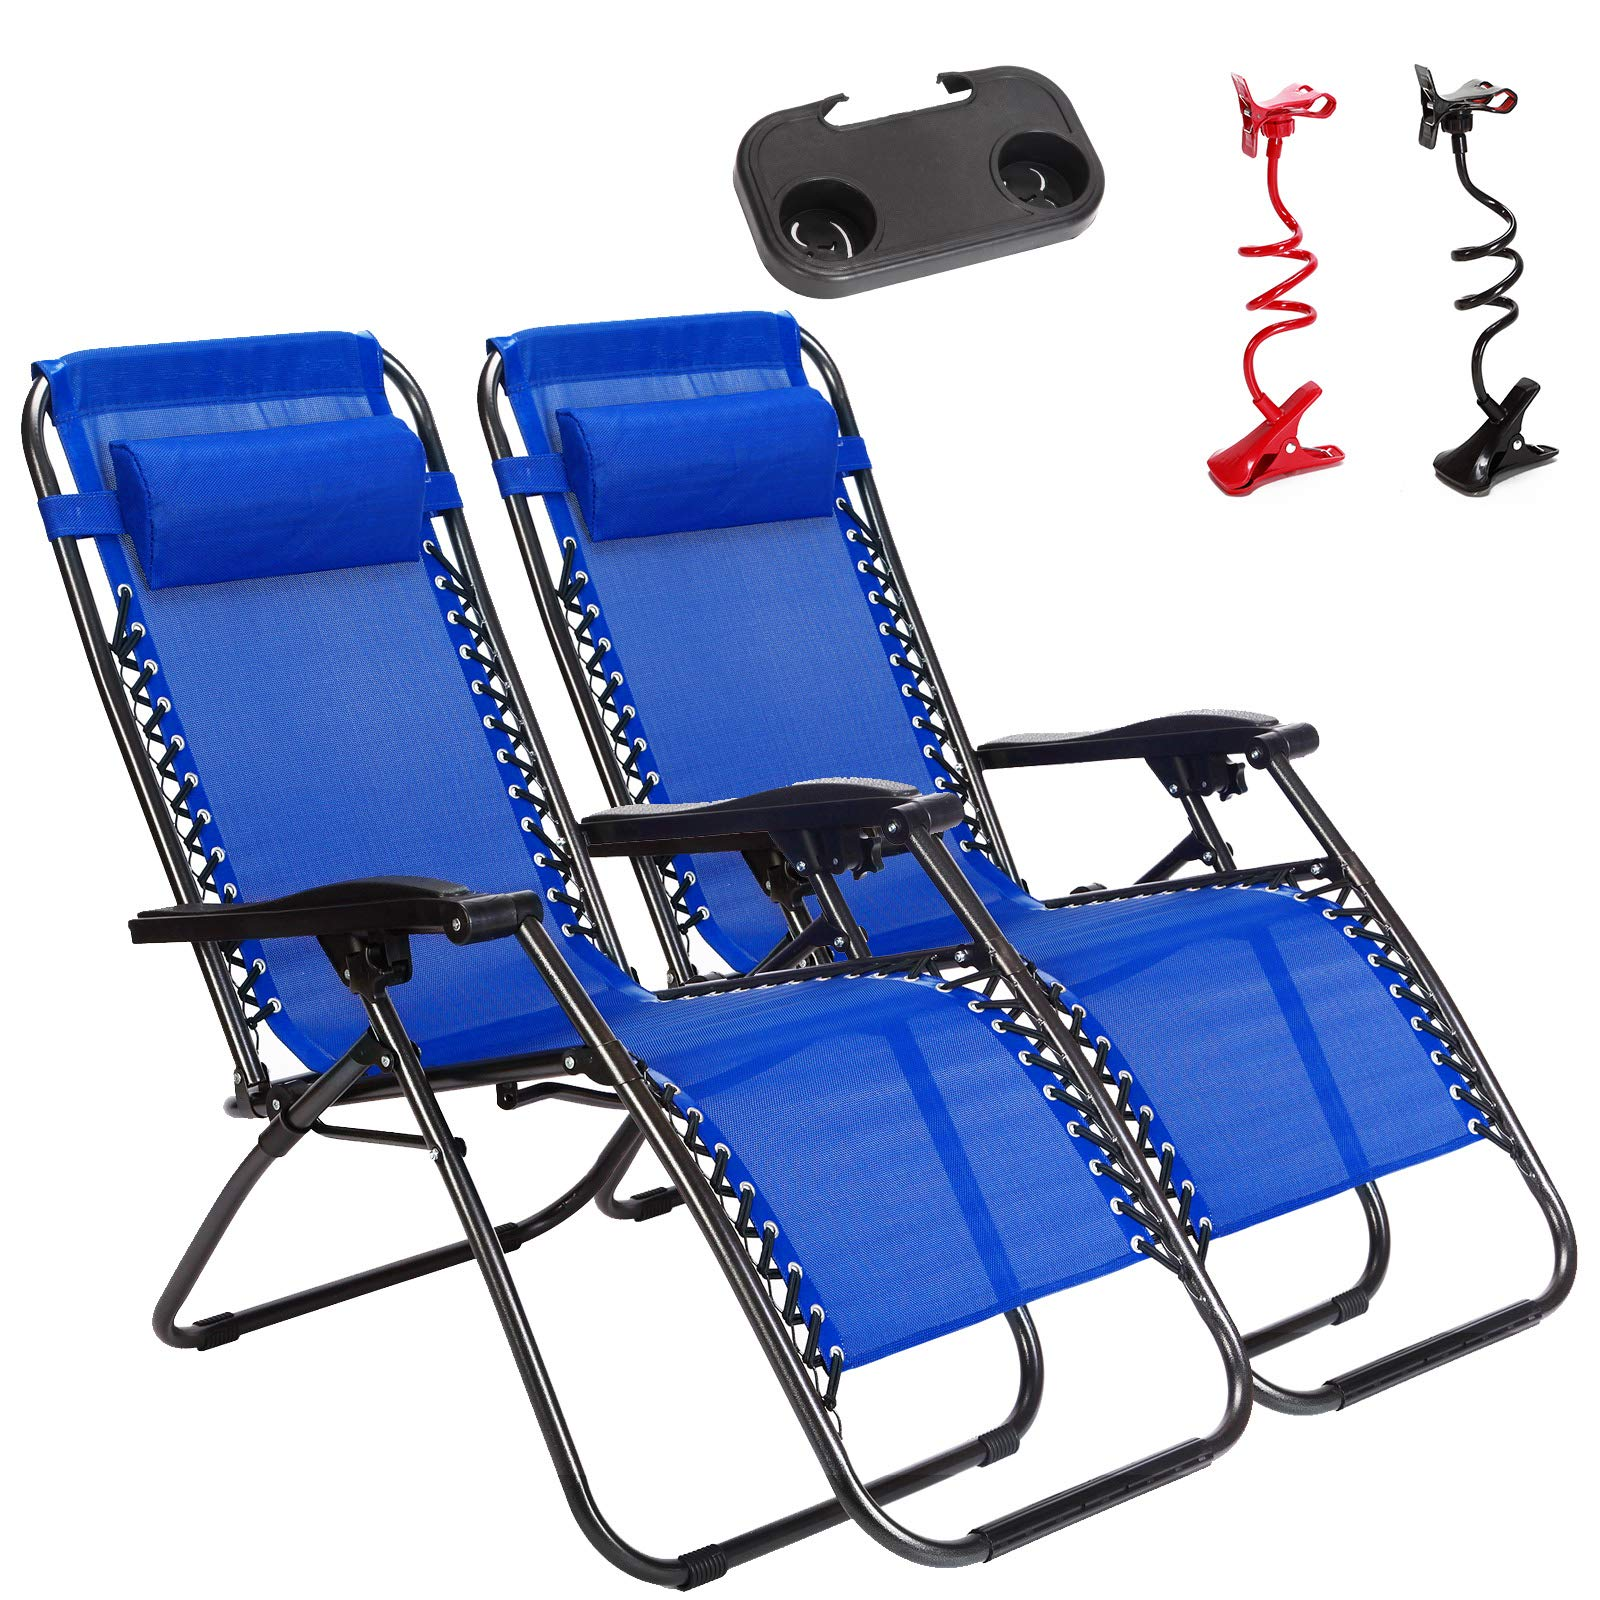 Unihome 2 Pack Zero Gravity Lounge Chair Reclining for Patio Beach Outdoor Camping Pool Yard Set of Pair with Free Drink Utility Tray & Cell Phone Holder